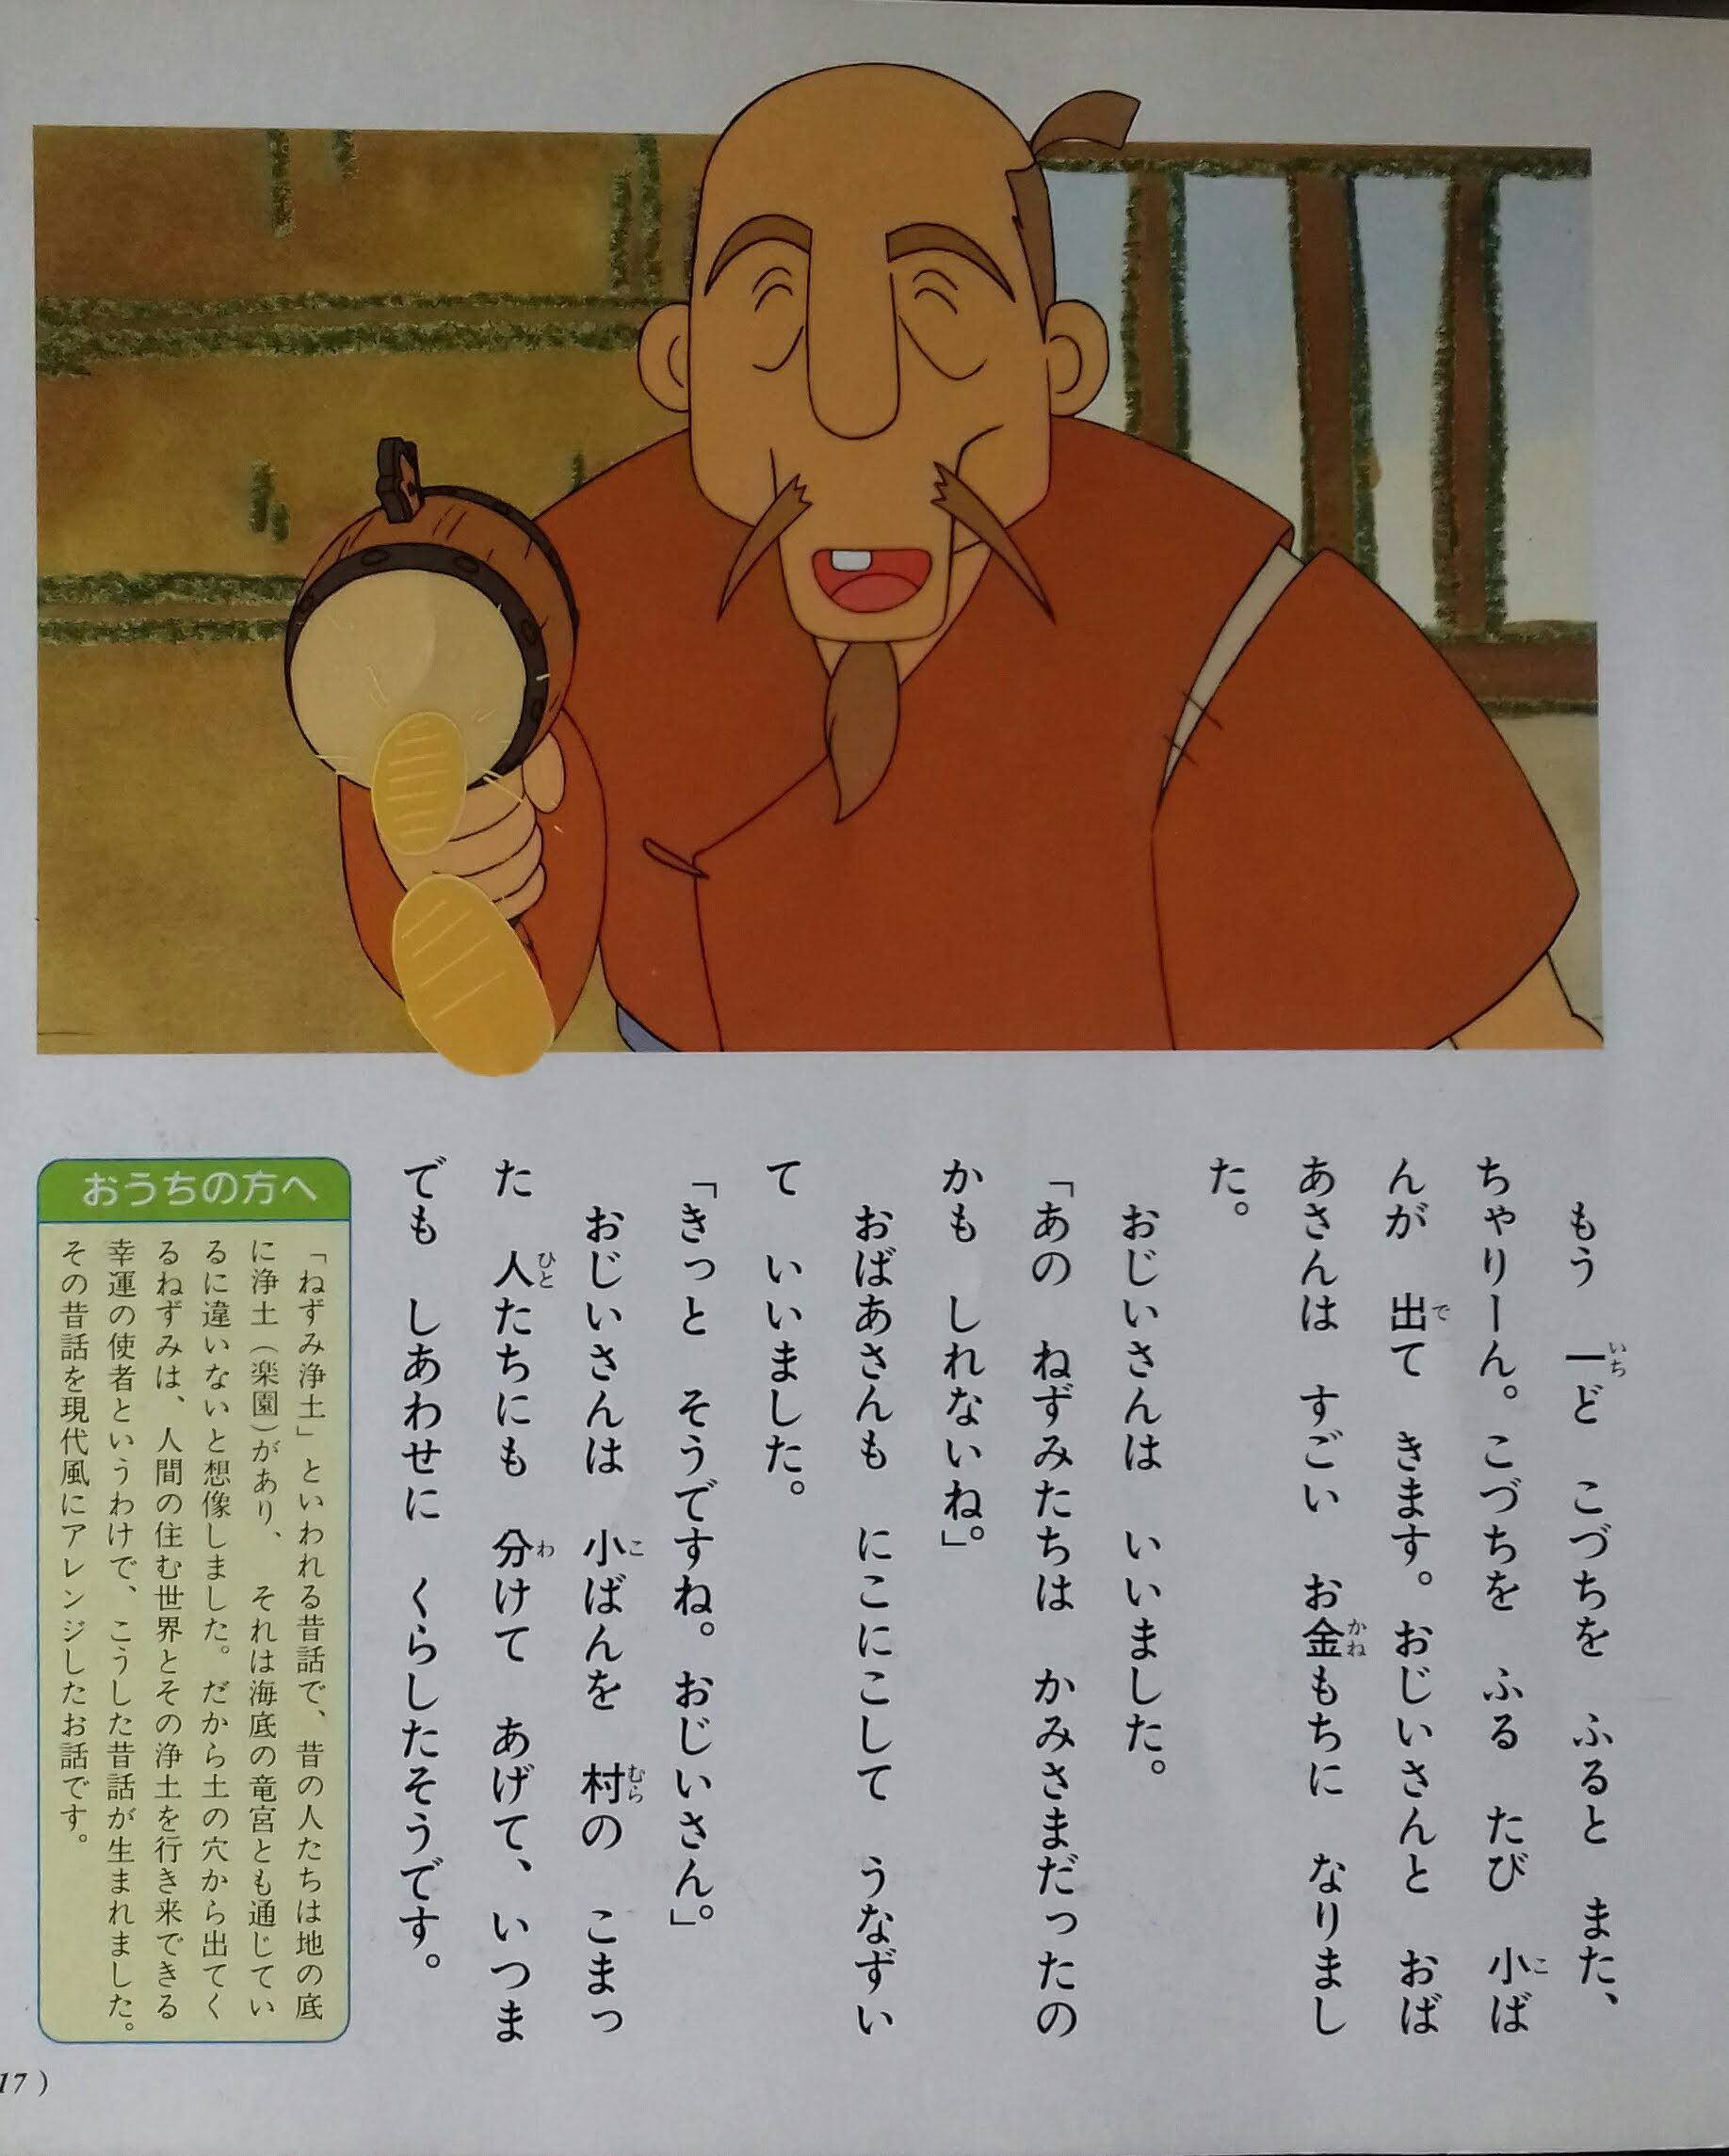 The old man is shaking a mallet from which Japanese oval gold coins coming out.